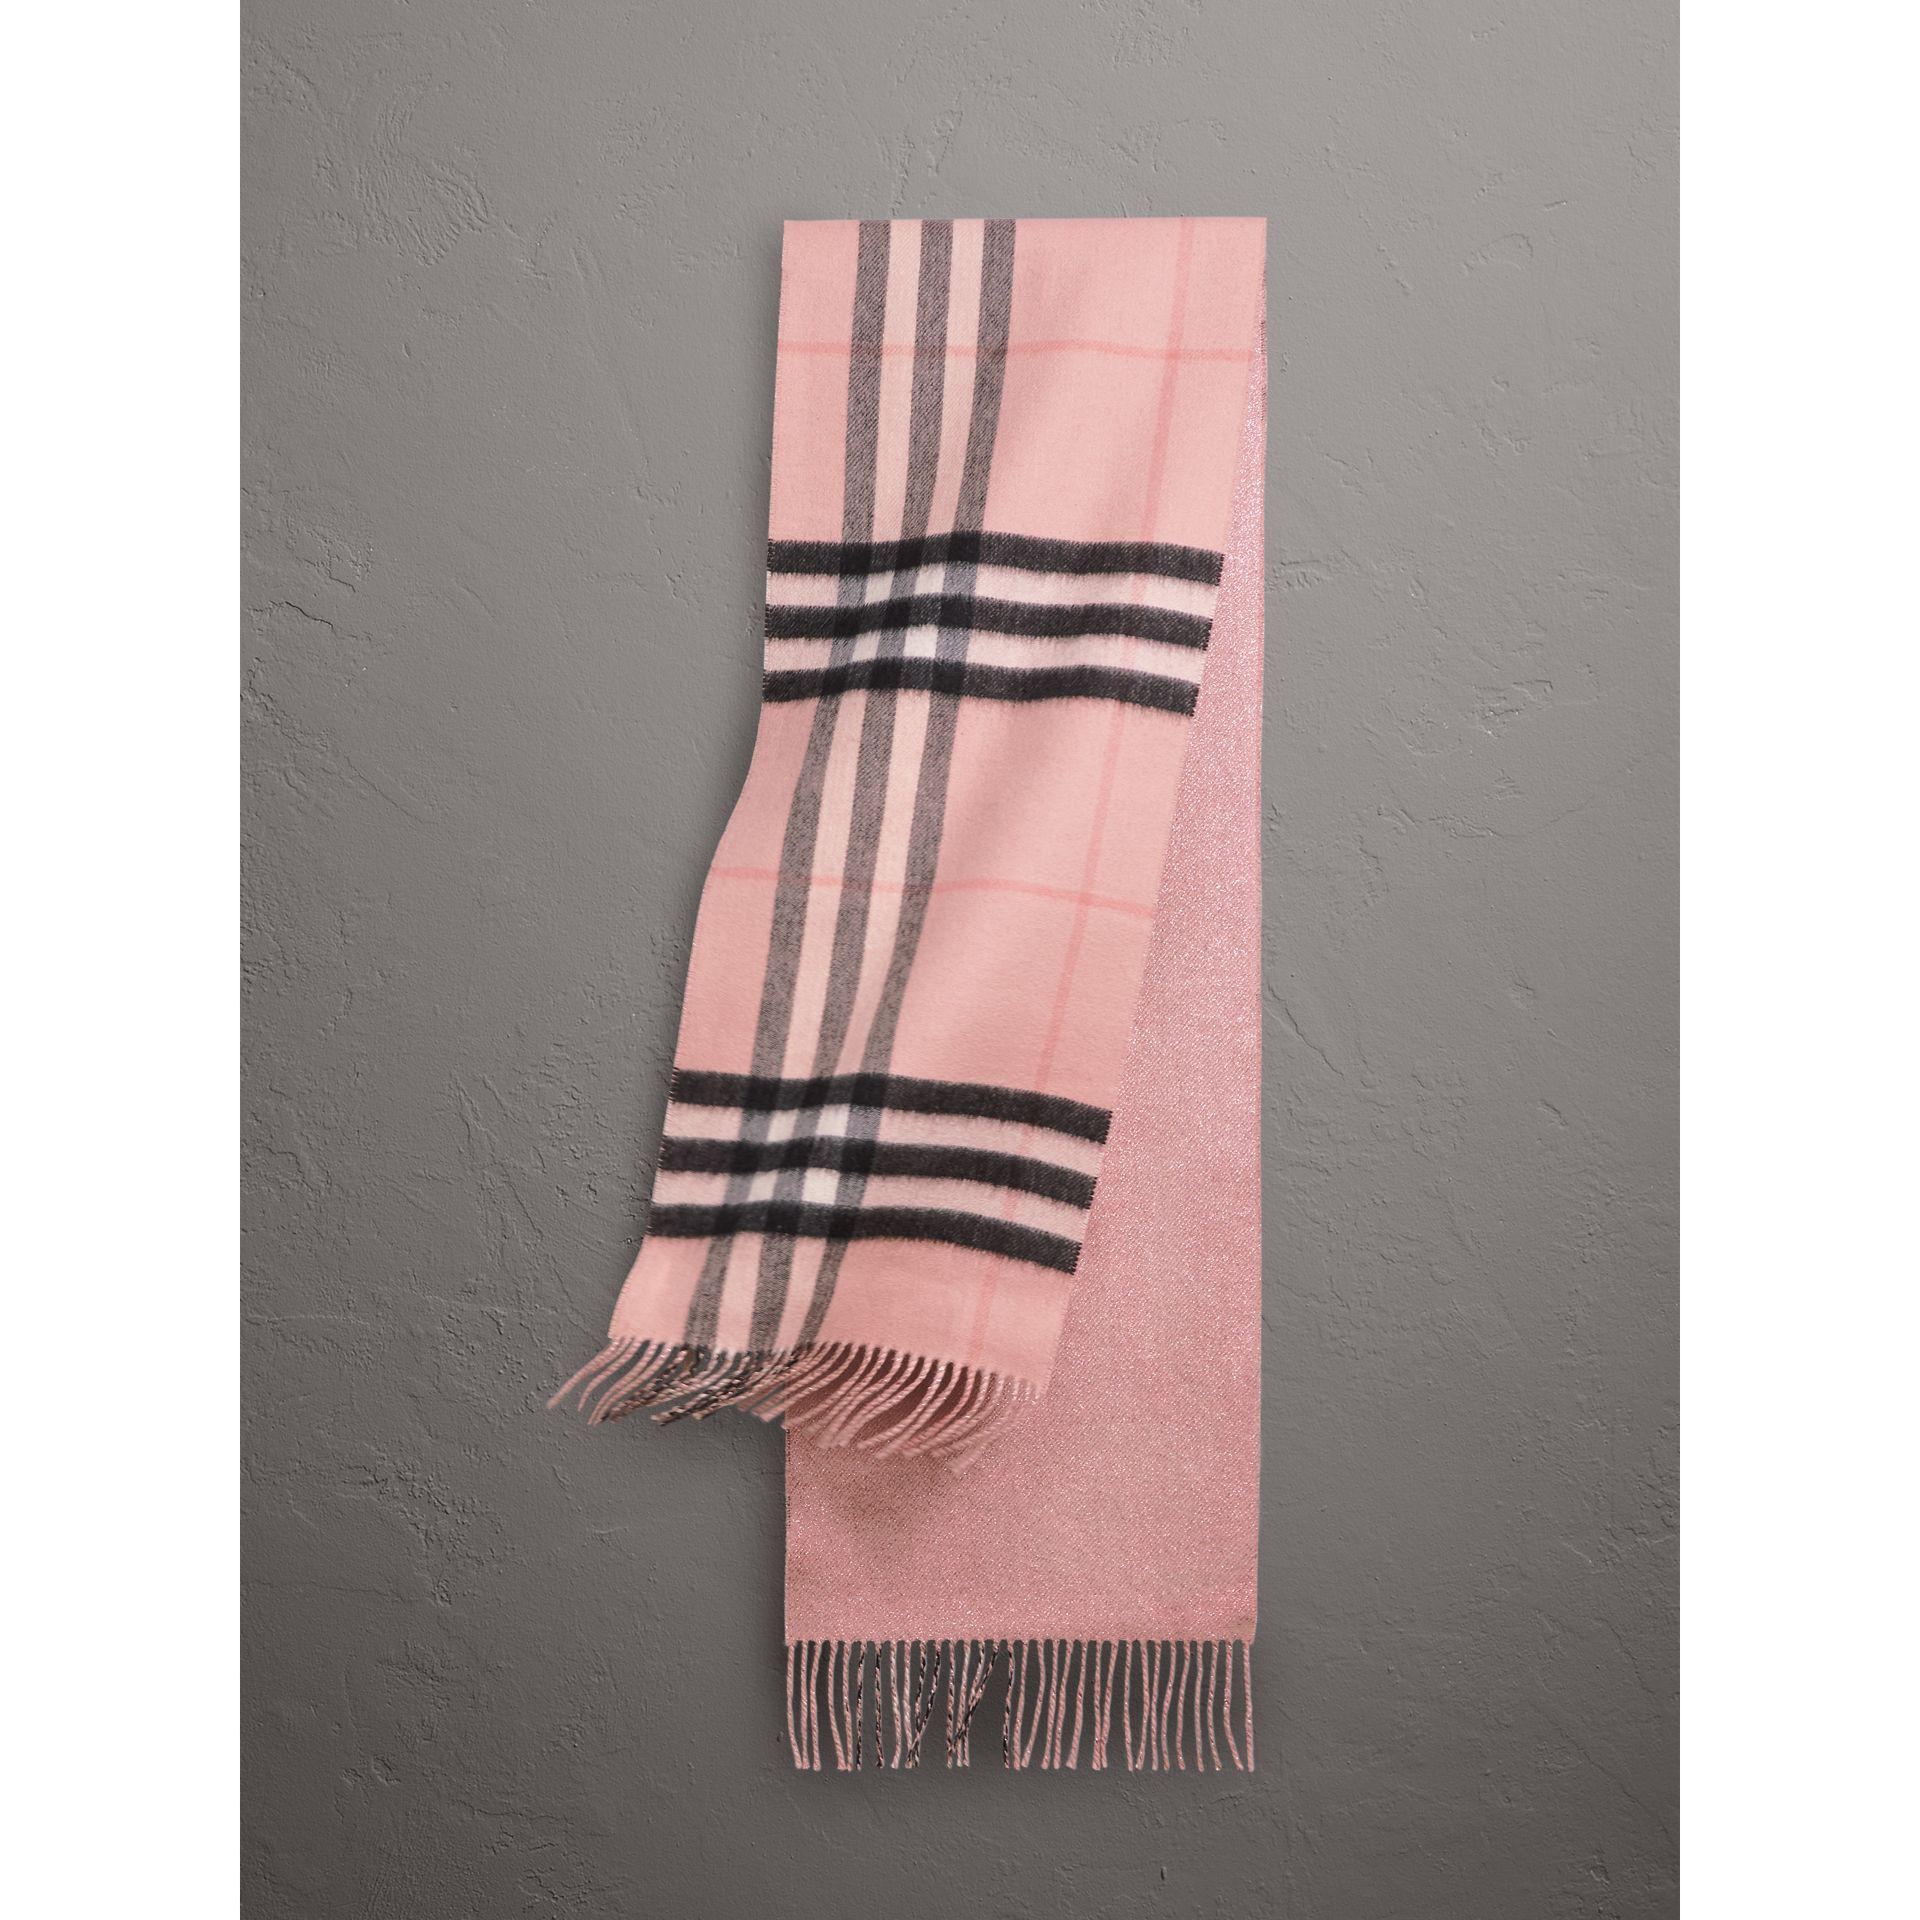 daa61d897f Burberry Reversible Metallic Check Cashmere Scarf Rose - Lyst